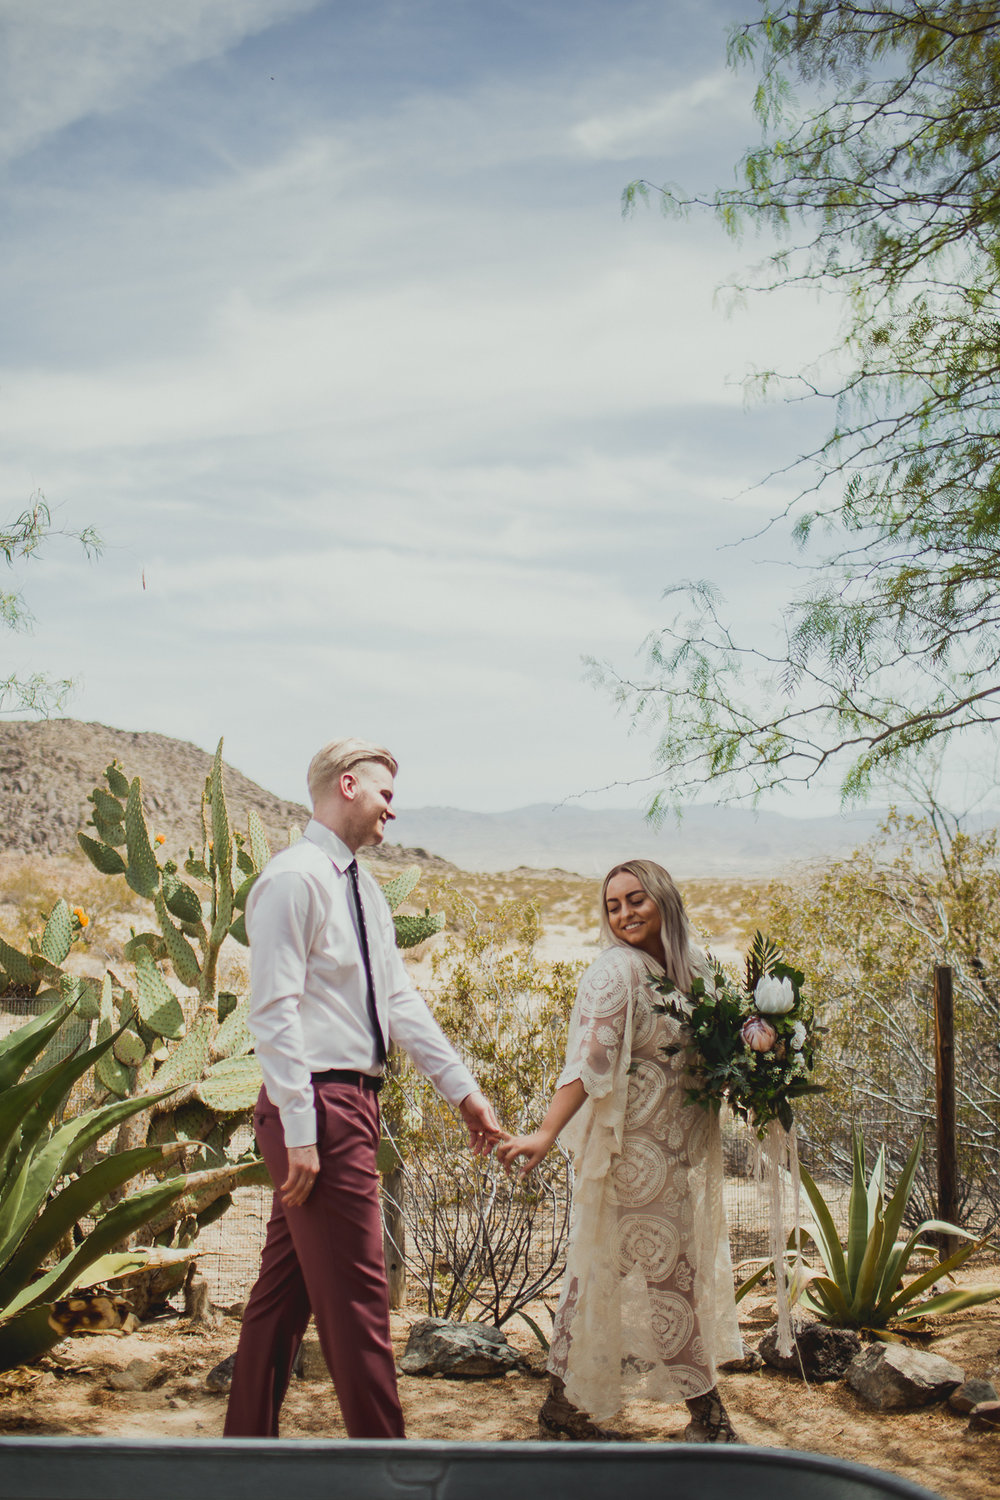 taryn-adam-joshua-tree-elopement-kelley-raye-los-angeles-wedding-photographer-66.jpg